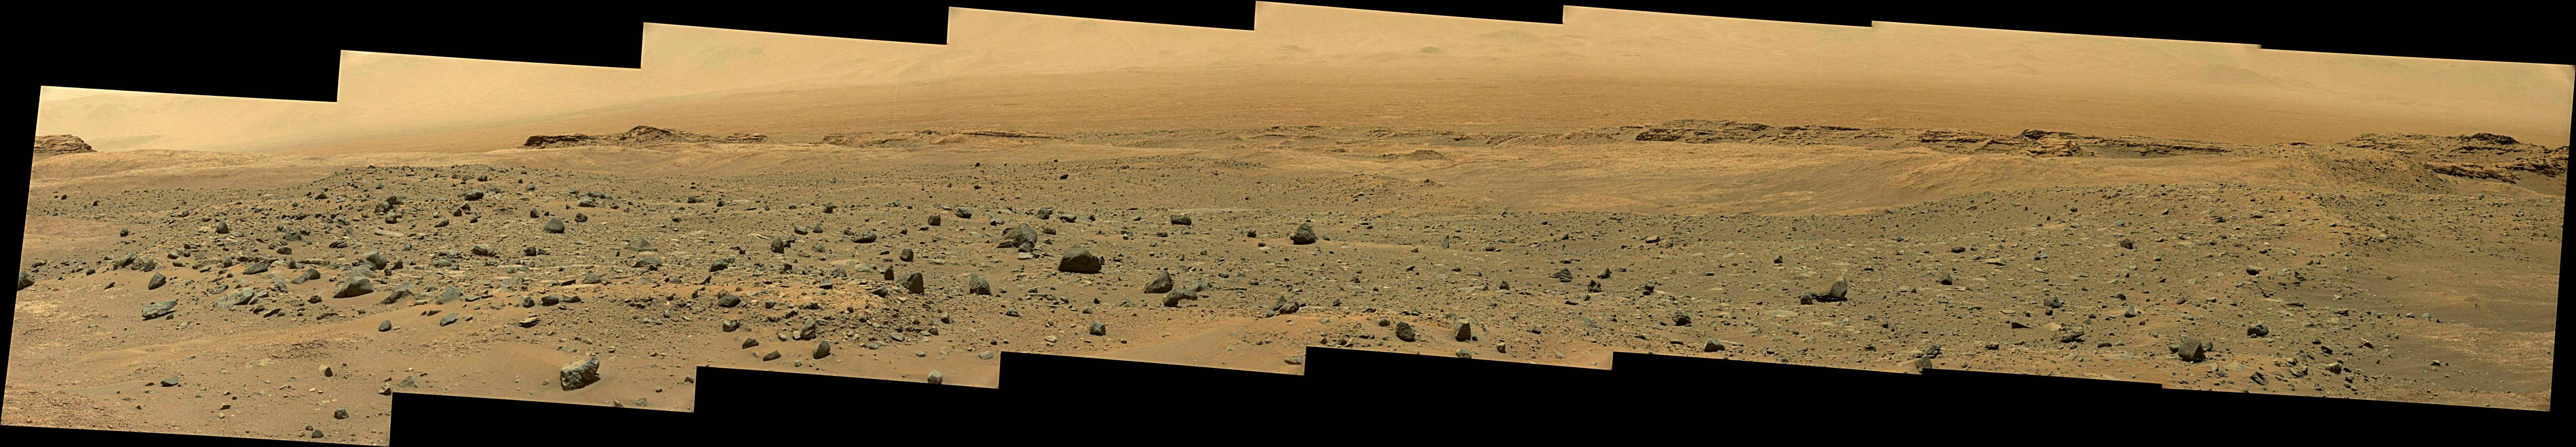 Curiosity Rover Panoramic View of Mars Sol 1402 – Click to enlarge